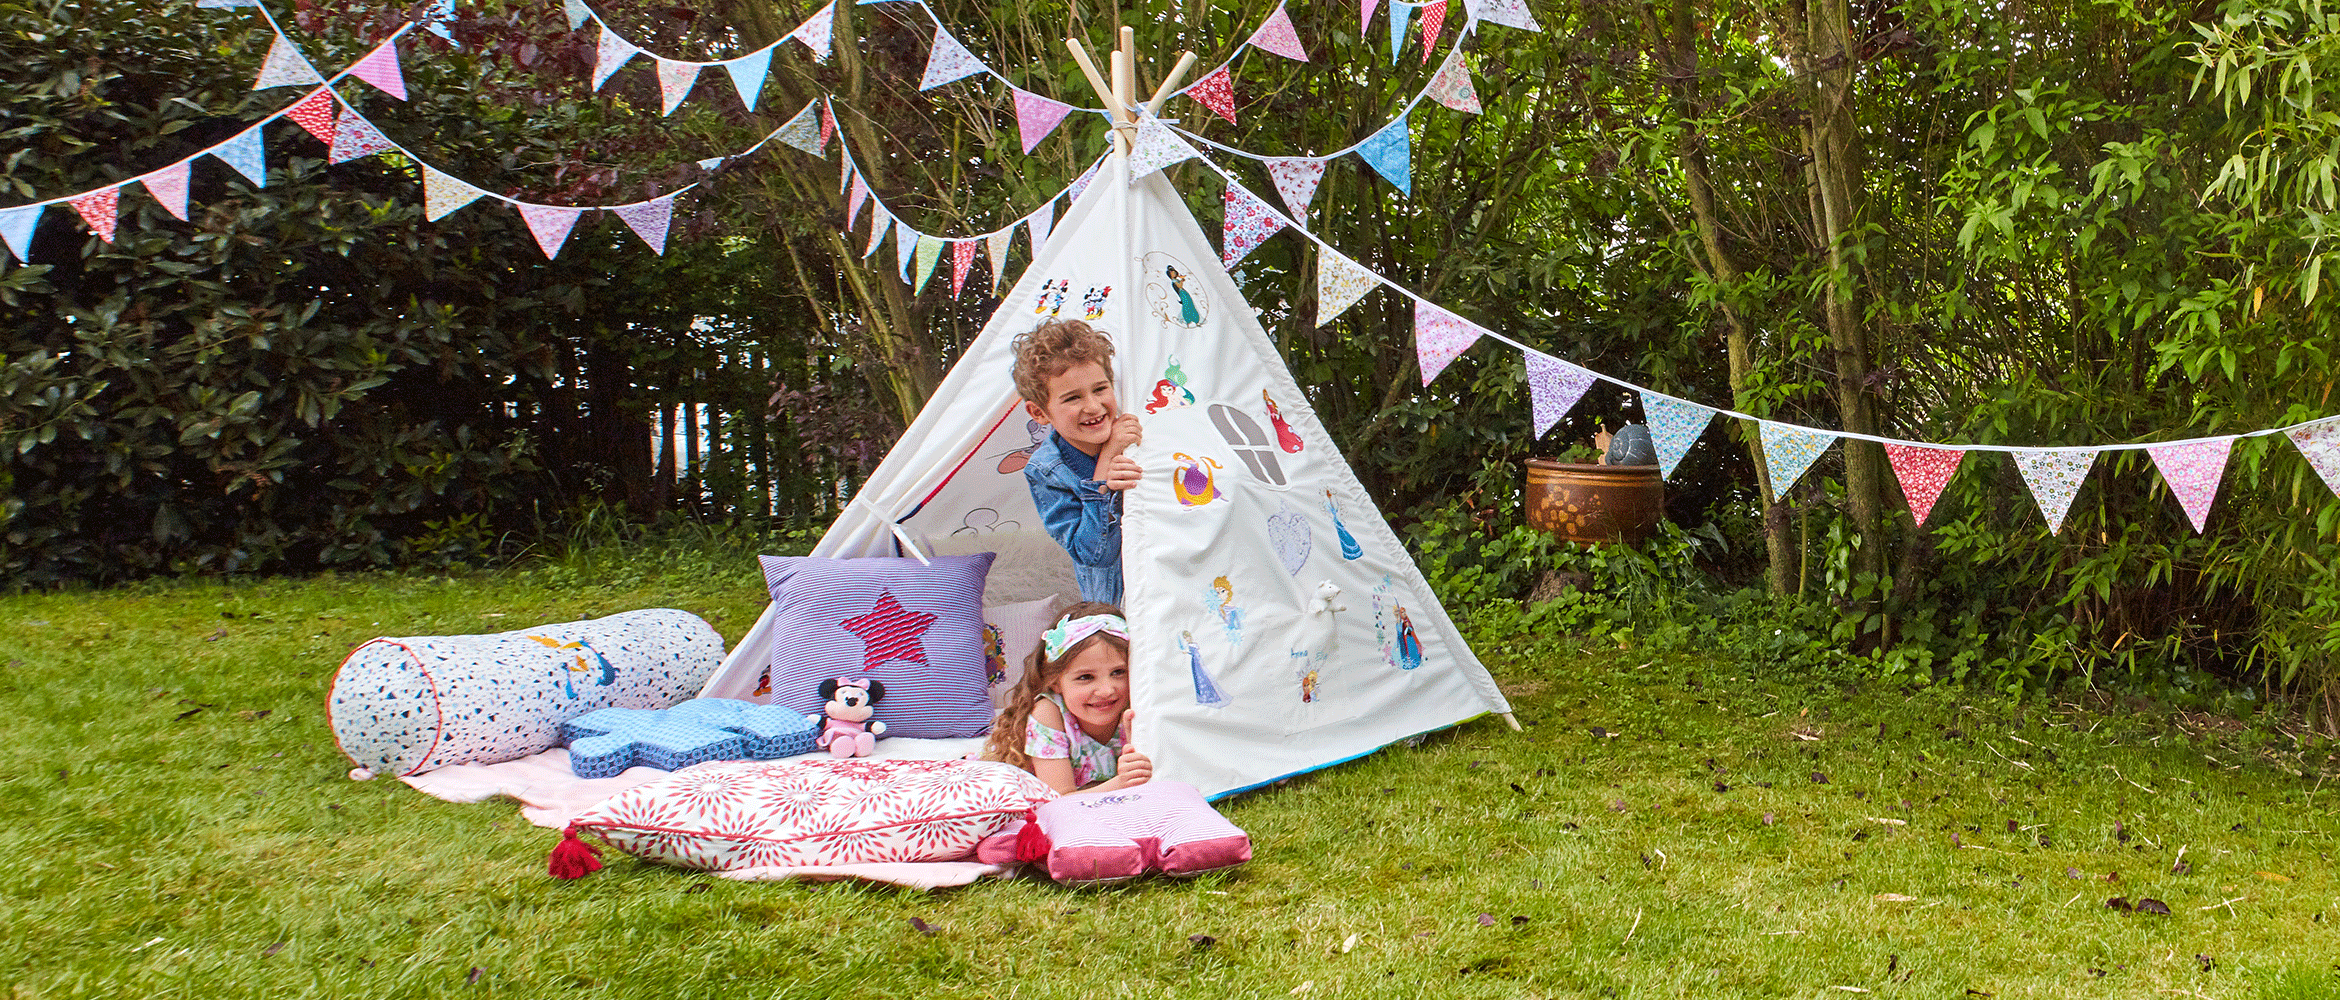 Girl and boy peaking out of tent embroidered with Disney designs